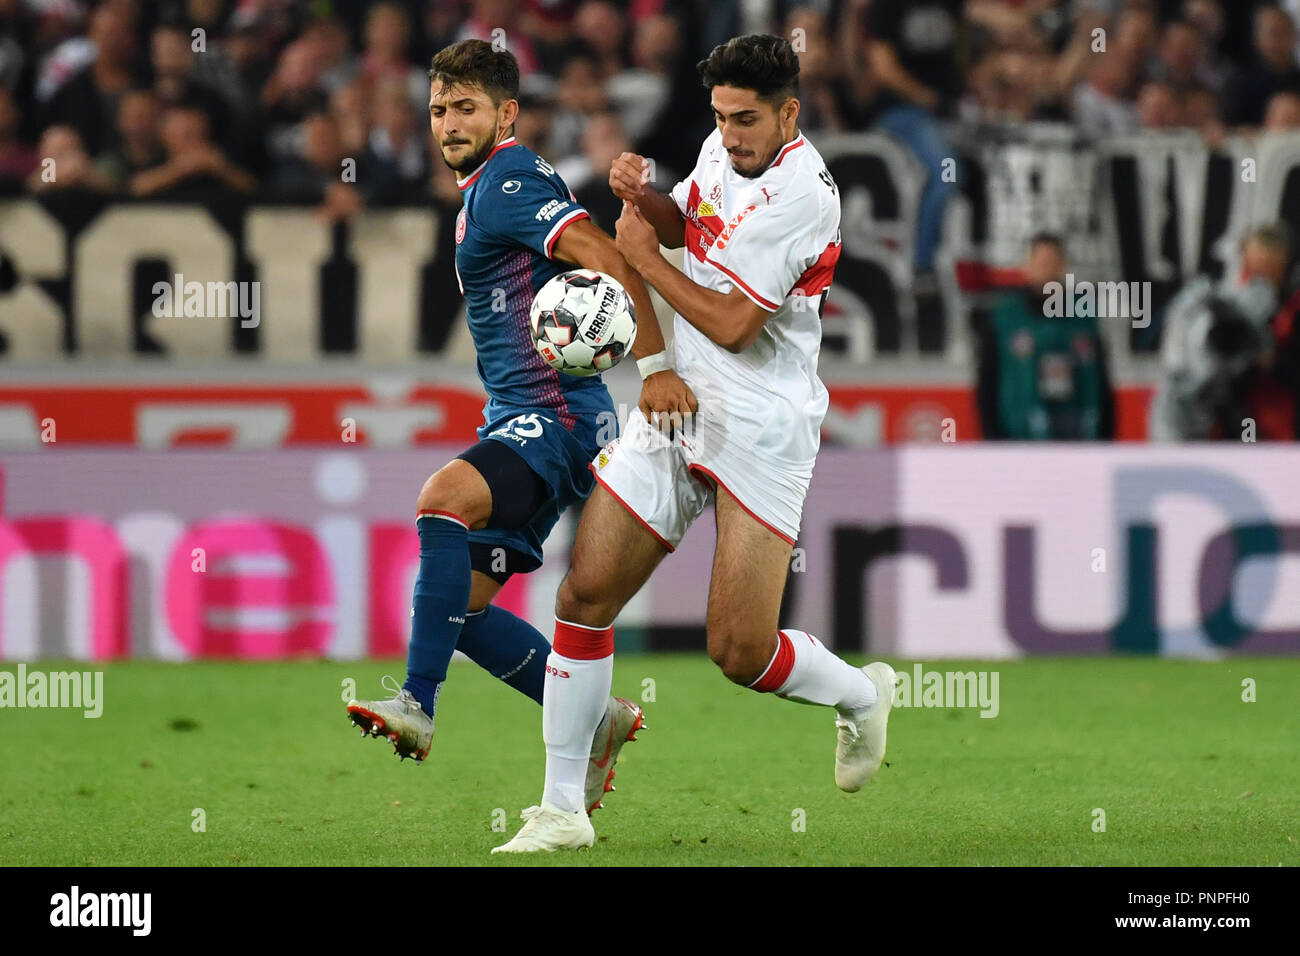 Stuttgart, Germany. 21st Sep, 2018.  Matthias ZIMMERMANN (Fortuna Dusseldorf), action, duels versus Berkay OEZCAN (VfB Stuttgart), touches his genitals, Soccer 1. Bundesliga, 4.matchday, matchday04, VFB Stuttgart (S) -Fortuna Dusseldorf (D) 0-0, on 21.09.2018 in Stuttgart/Germany. MERCEDES BENZ ARENA. DFL REGULATIONS PROHIBIT ANY USE OF PHOTOGRAPH AS IMAGE SEQUENCES AND/OR QUASI VIDEO. | usage worldwide Credit: dpa/Alamy Live News Credit: dpa picture alliance/Alamy Live News - Stock Image